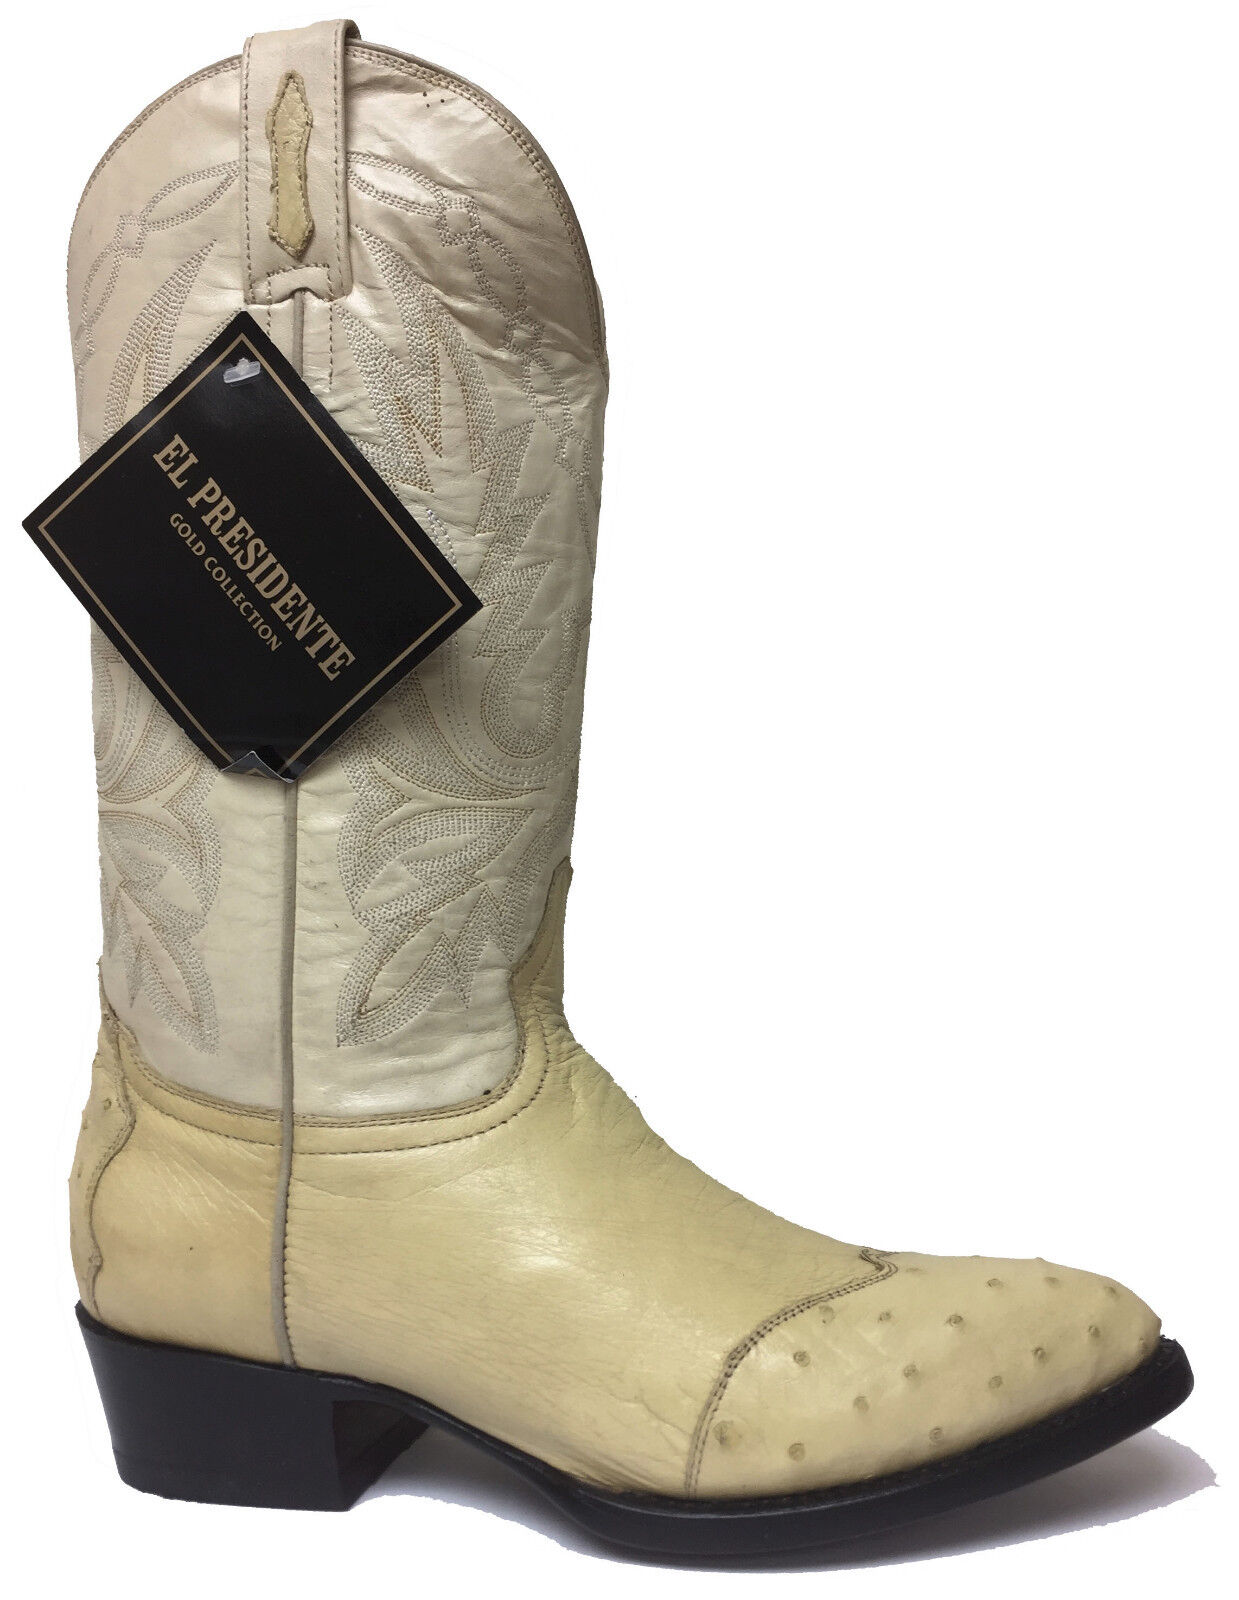 New Mens Off White Genuine Ostrich Leather Western Cowboy Rodeo Boots Size 7.5